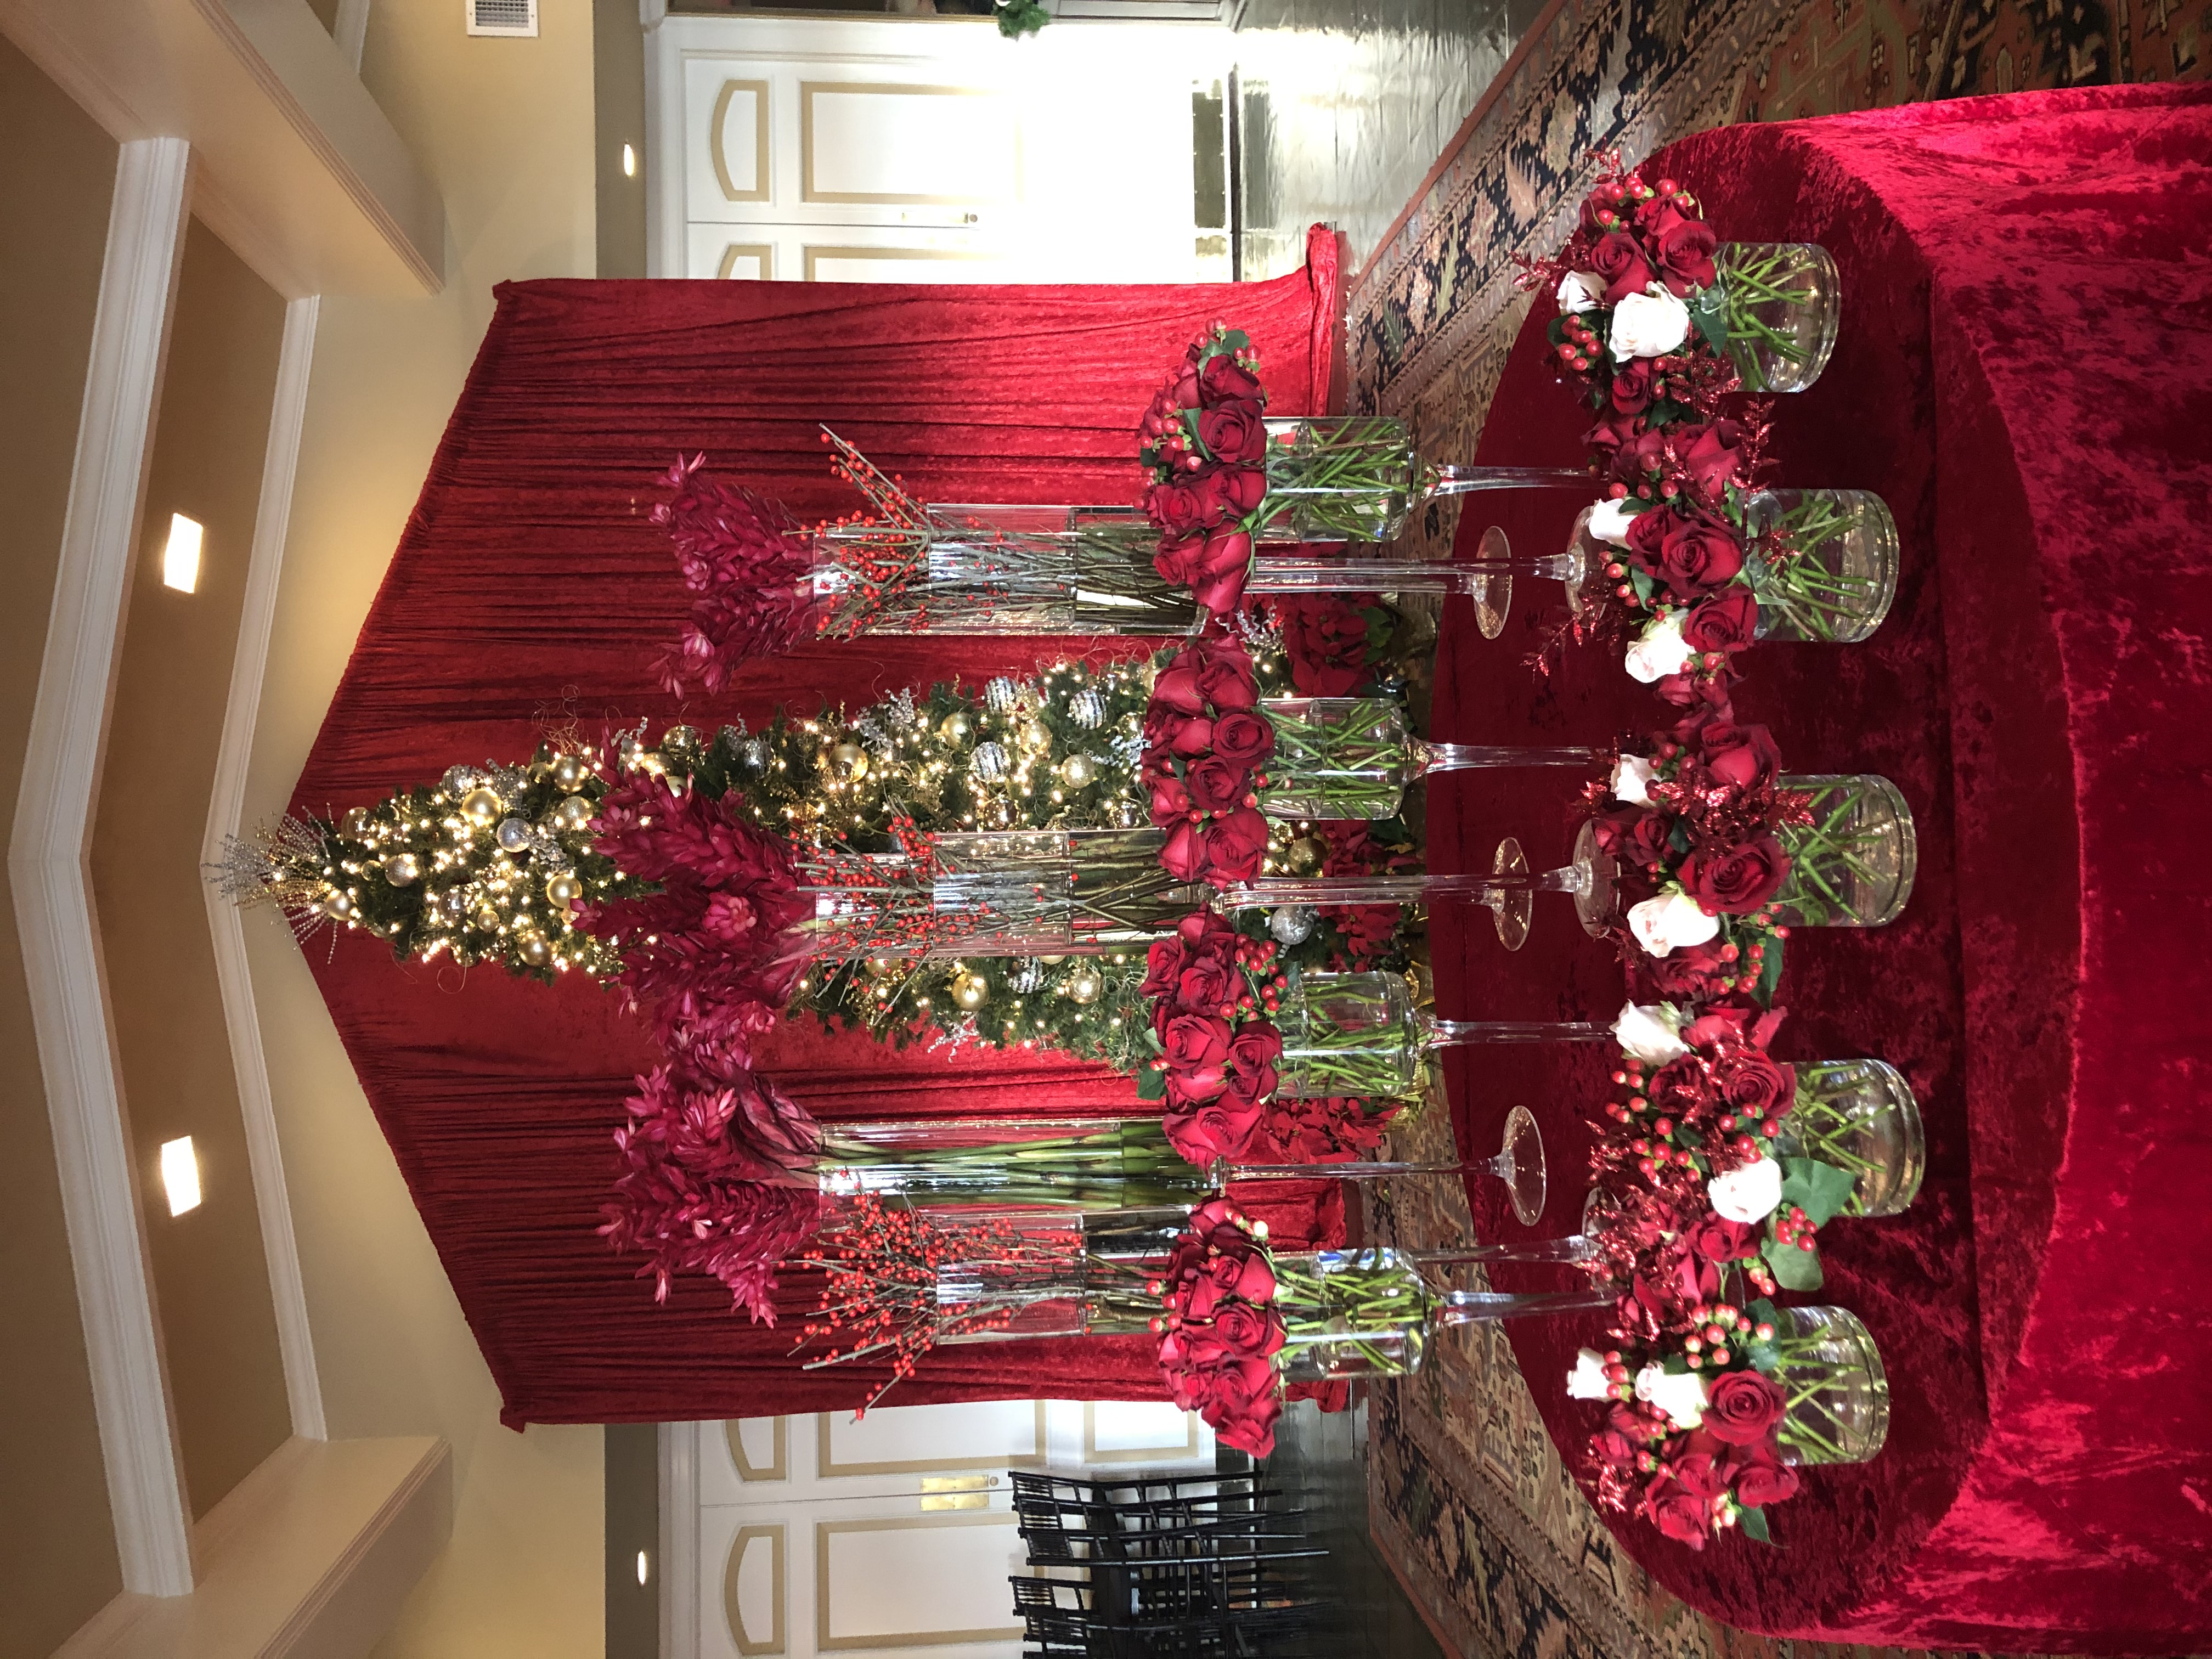 Country Club Black Tie Floral Entrance